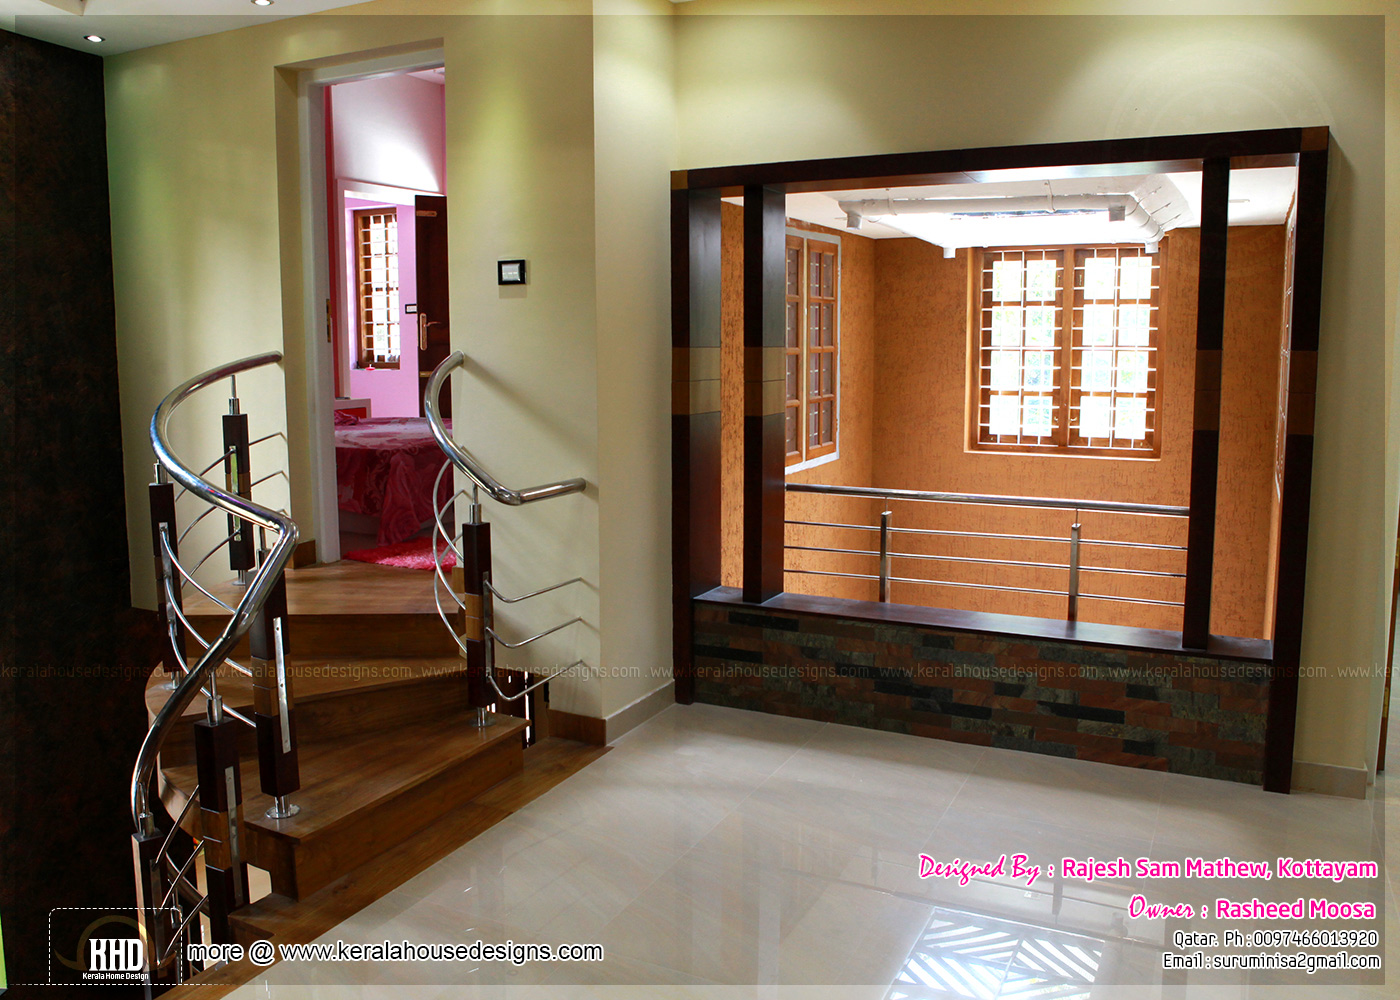 Kerala interior design with photos kerala home design for House design inside